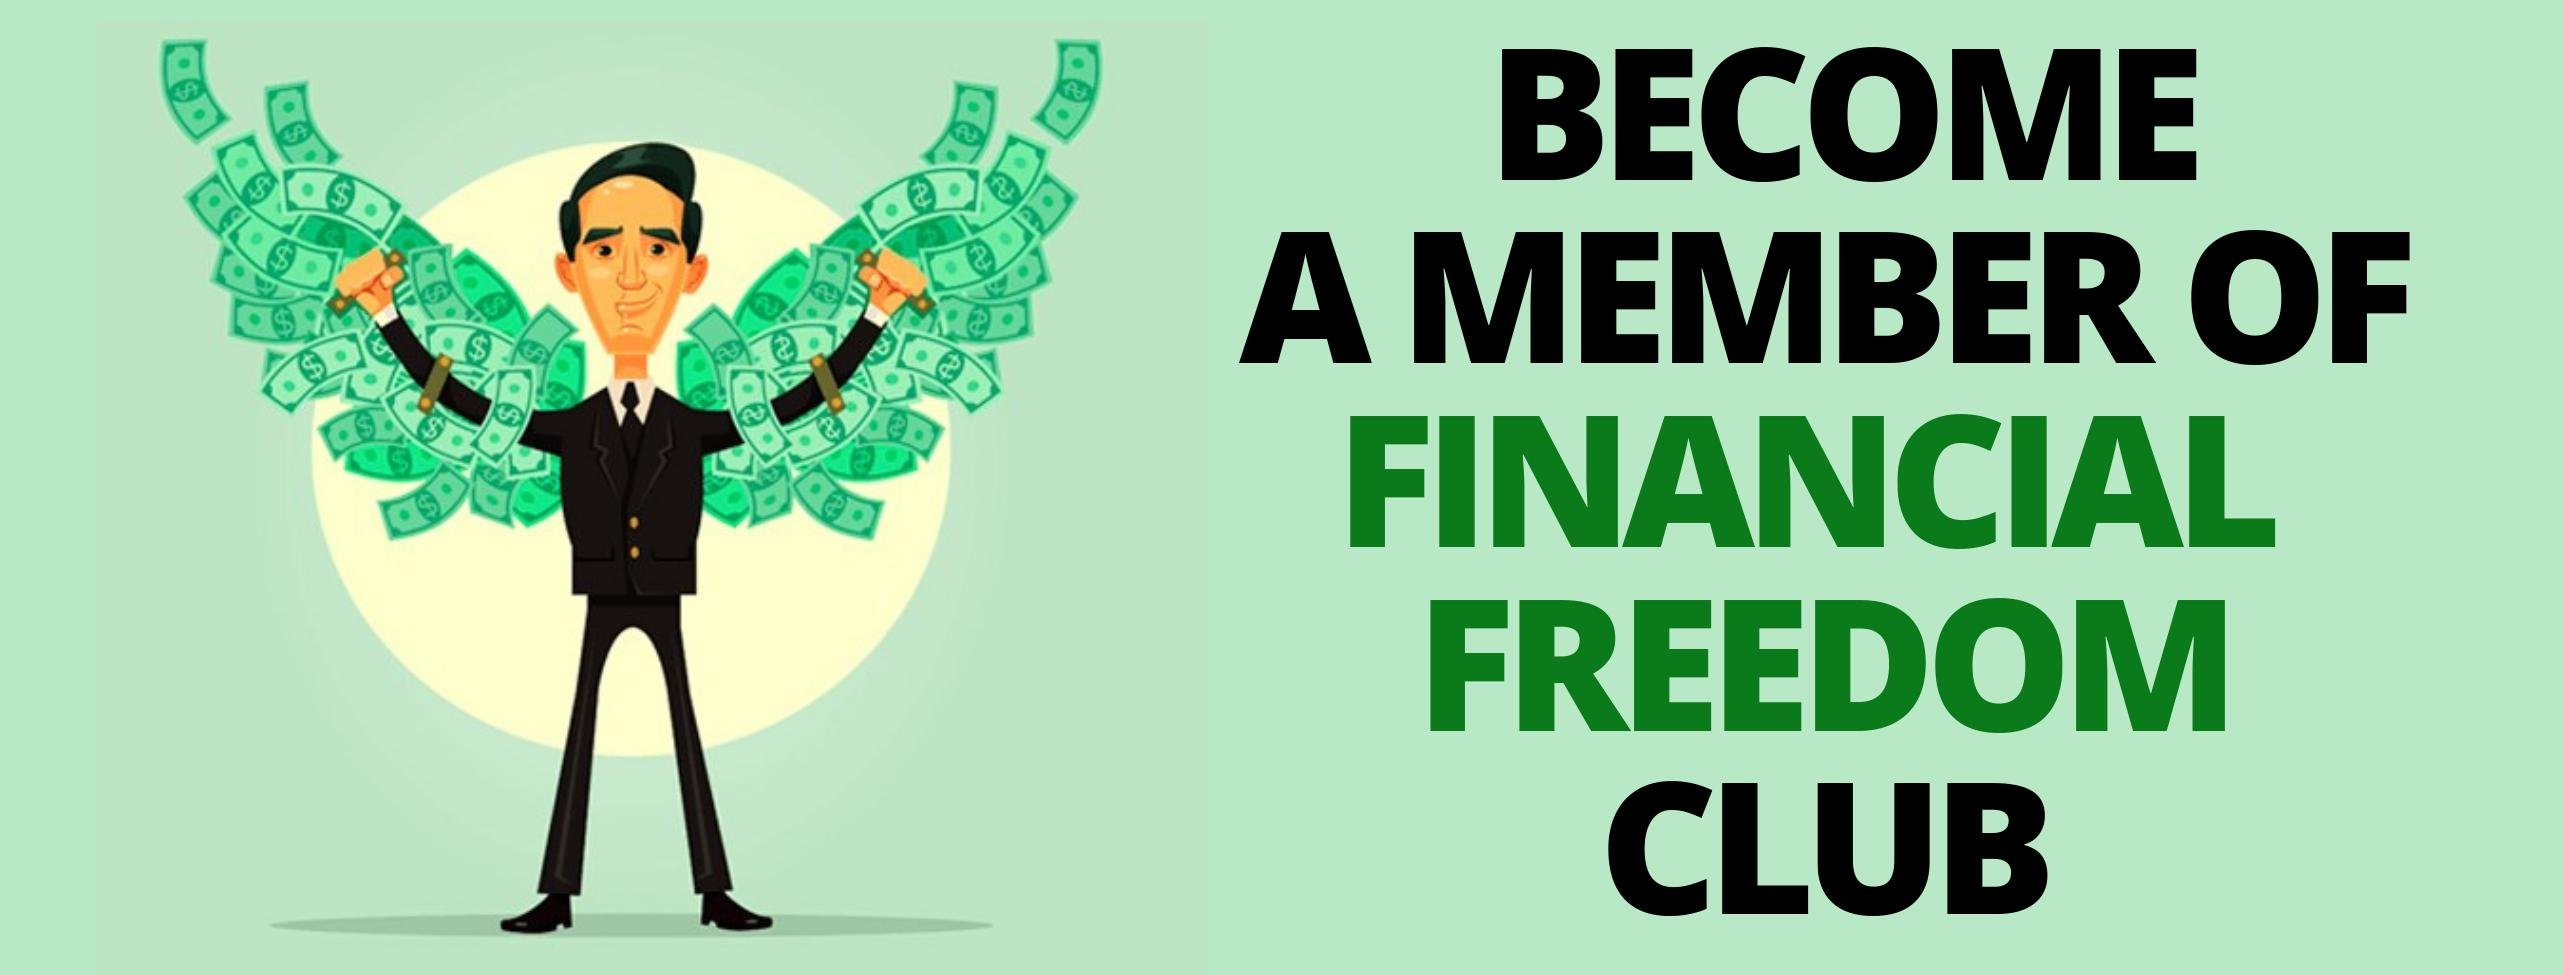 become a member of financial freedom club